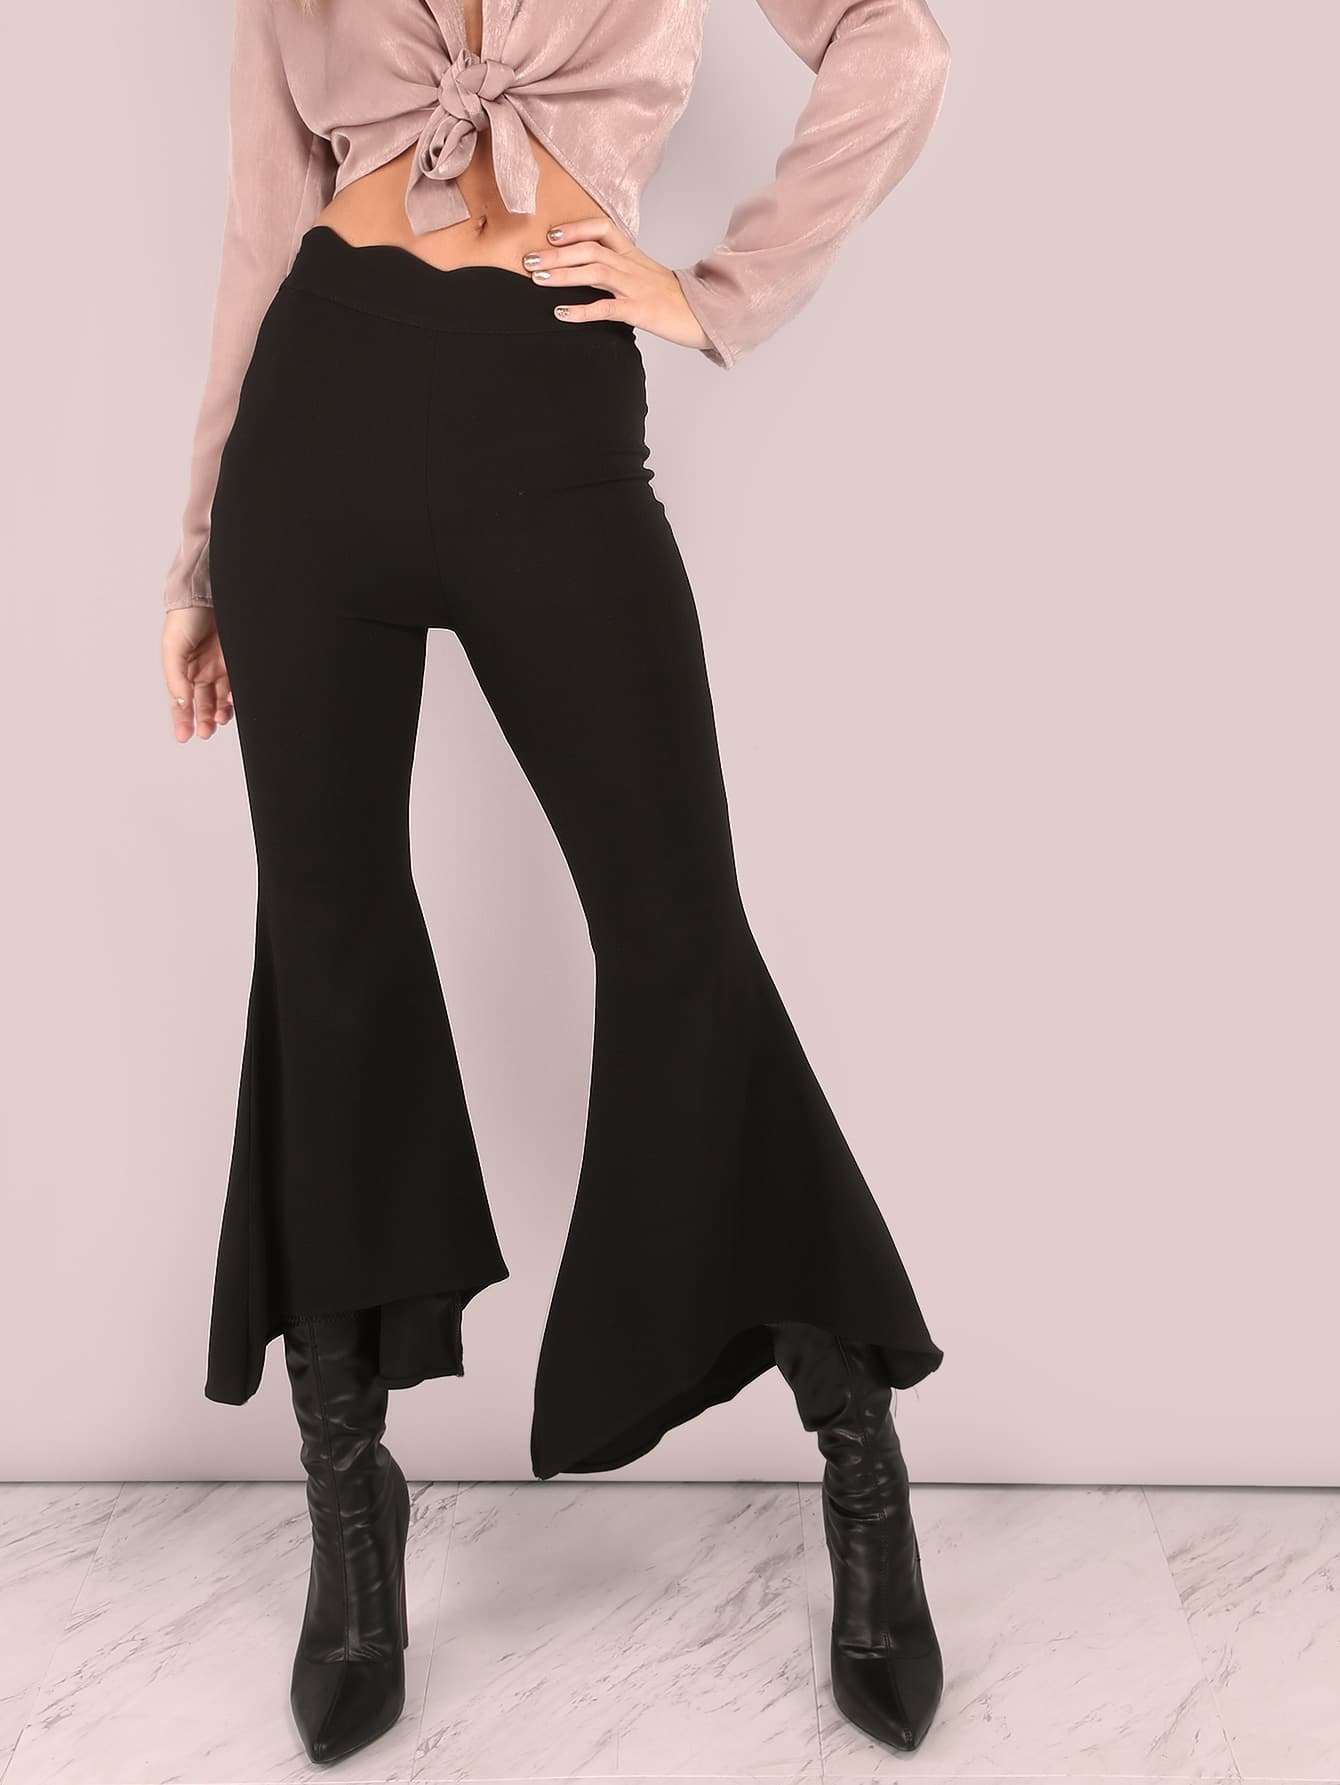 Free shipping BOTH ways on black flare stretch pants women, from our vast selection of styles. Fast delivery, and 24/7/ real-person service with a smile. Click or call